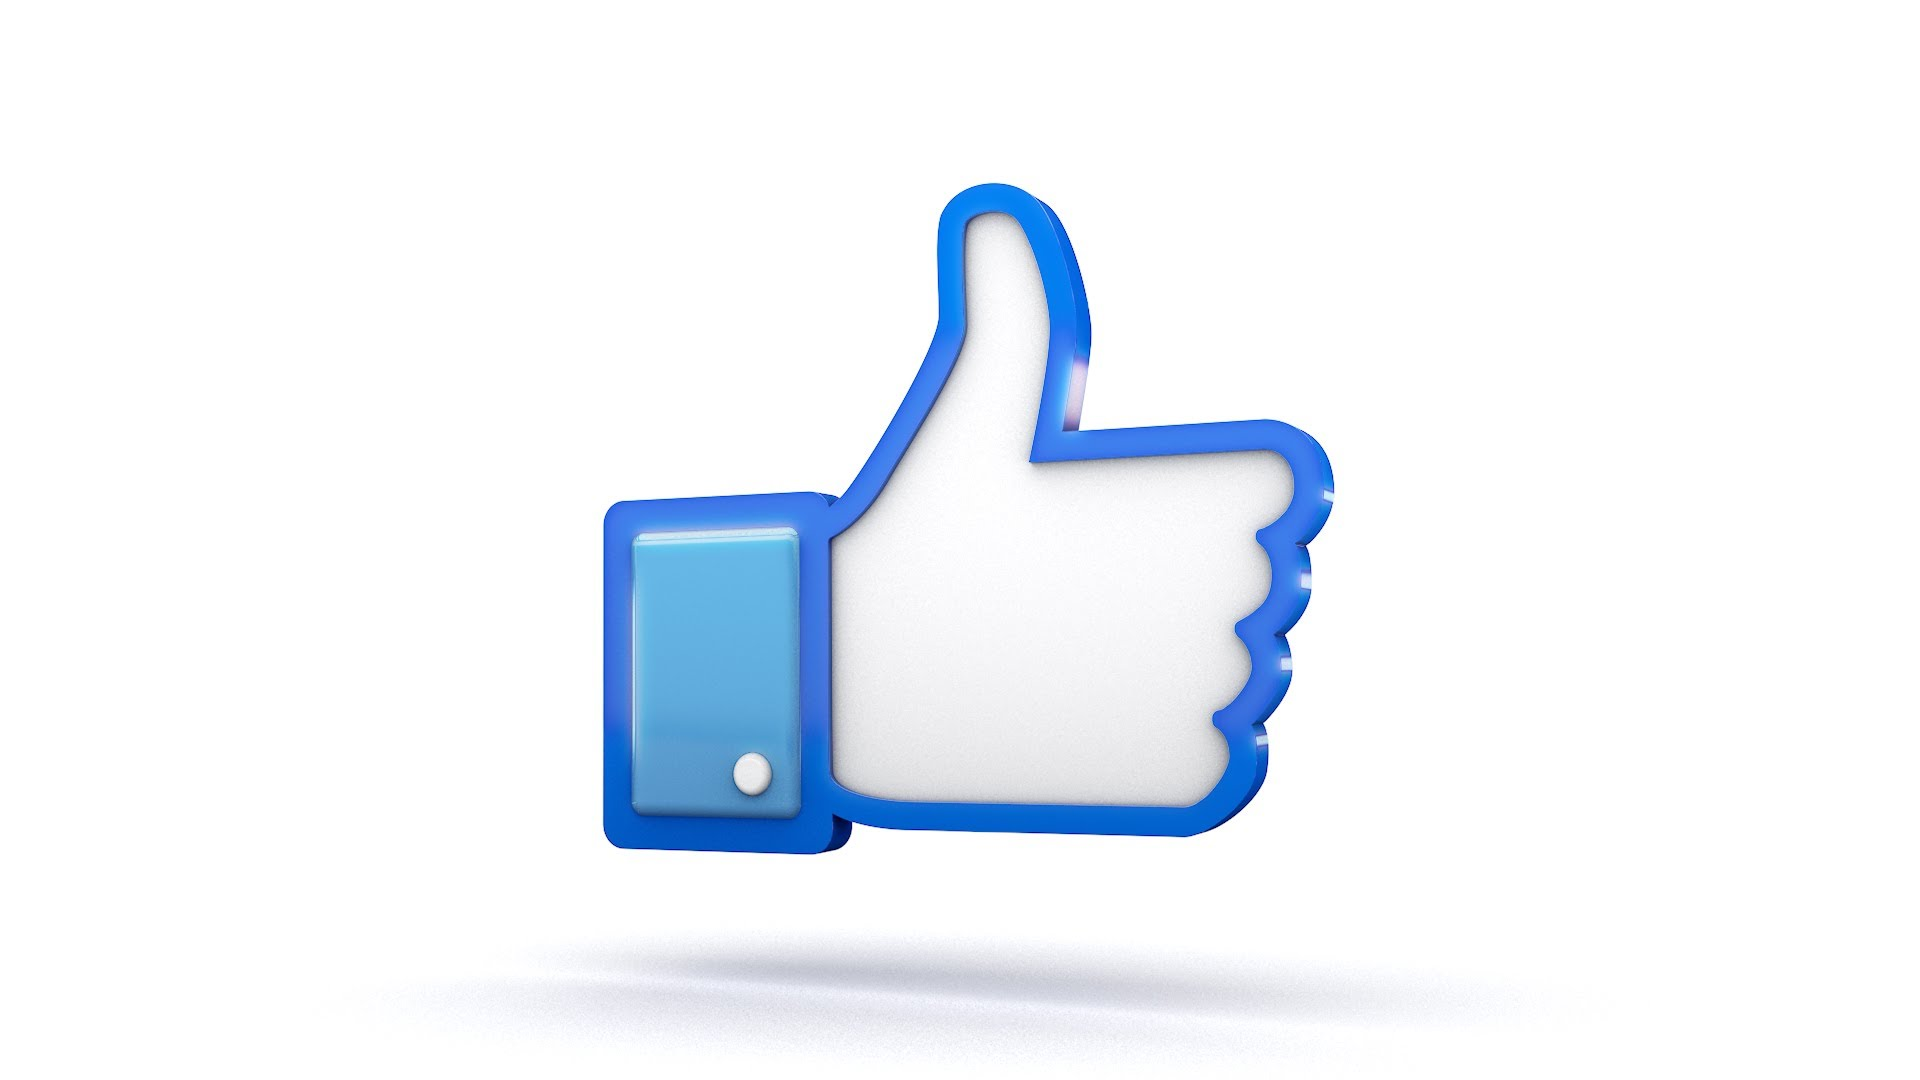 1920x1080 Facebook 3d Thumbs Up Like Icon